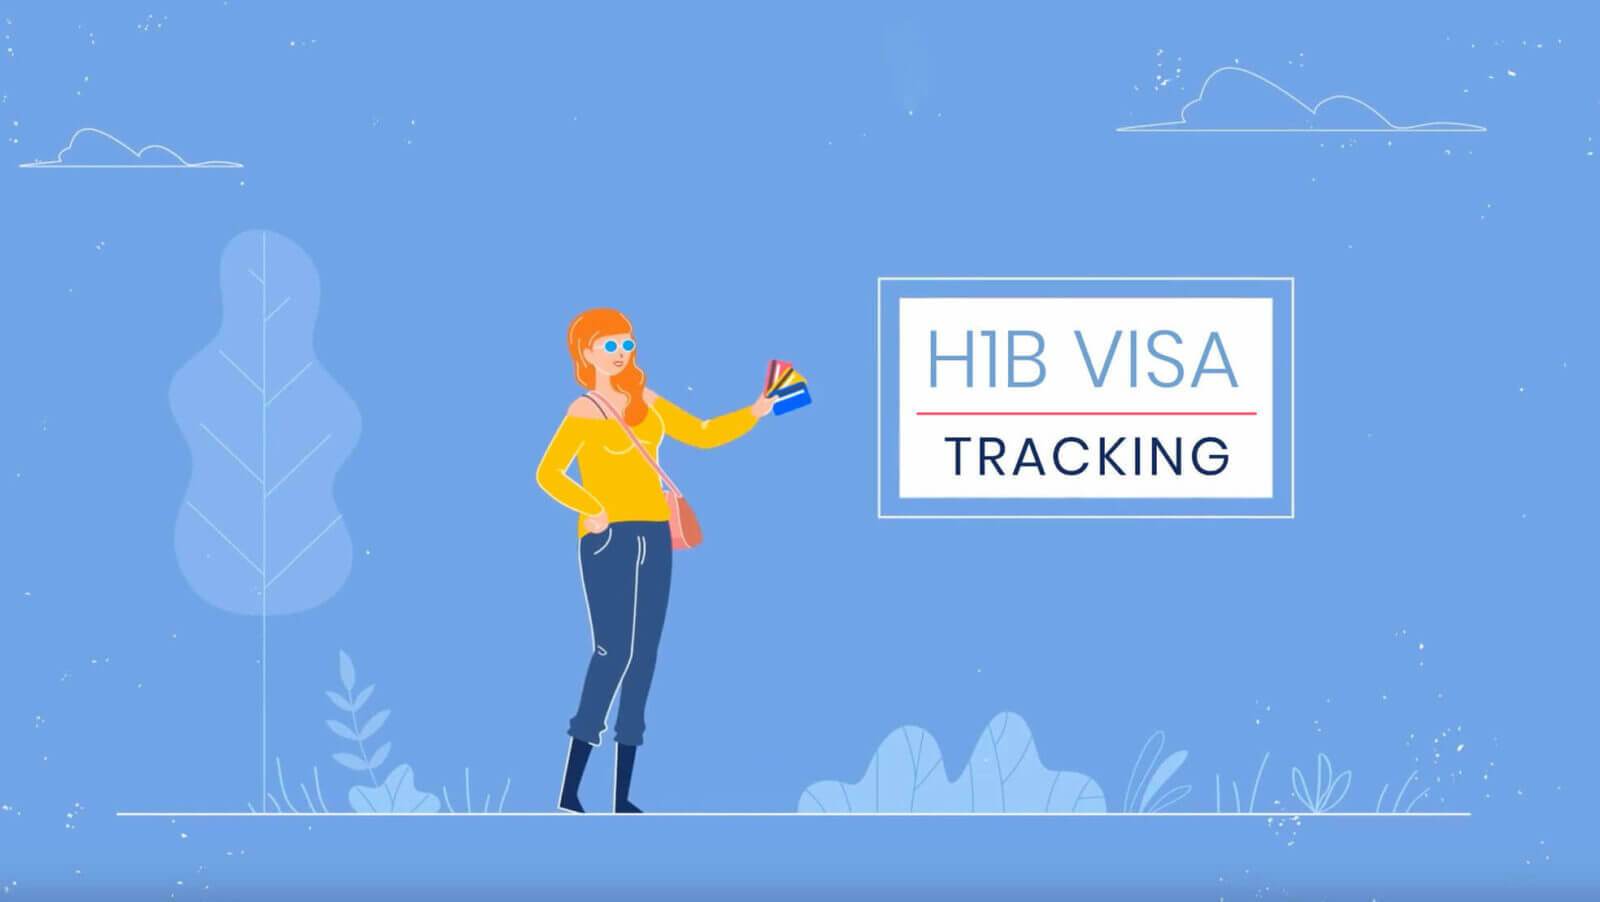 Lesson 5_How to Track Your H1B Visa Application